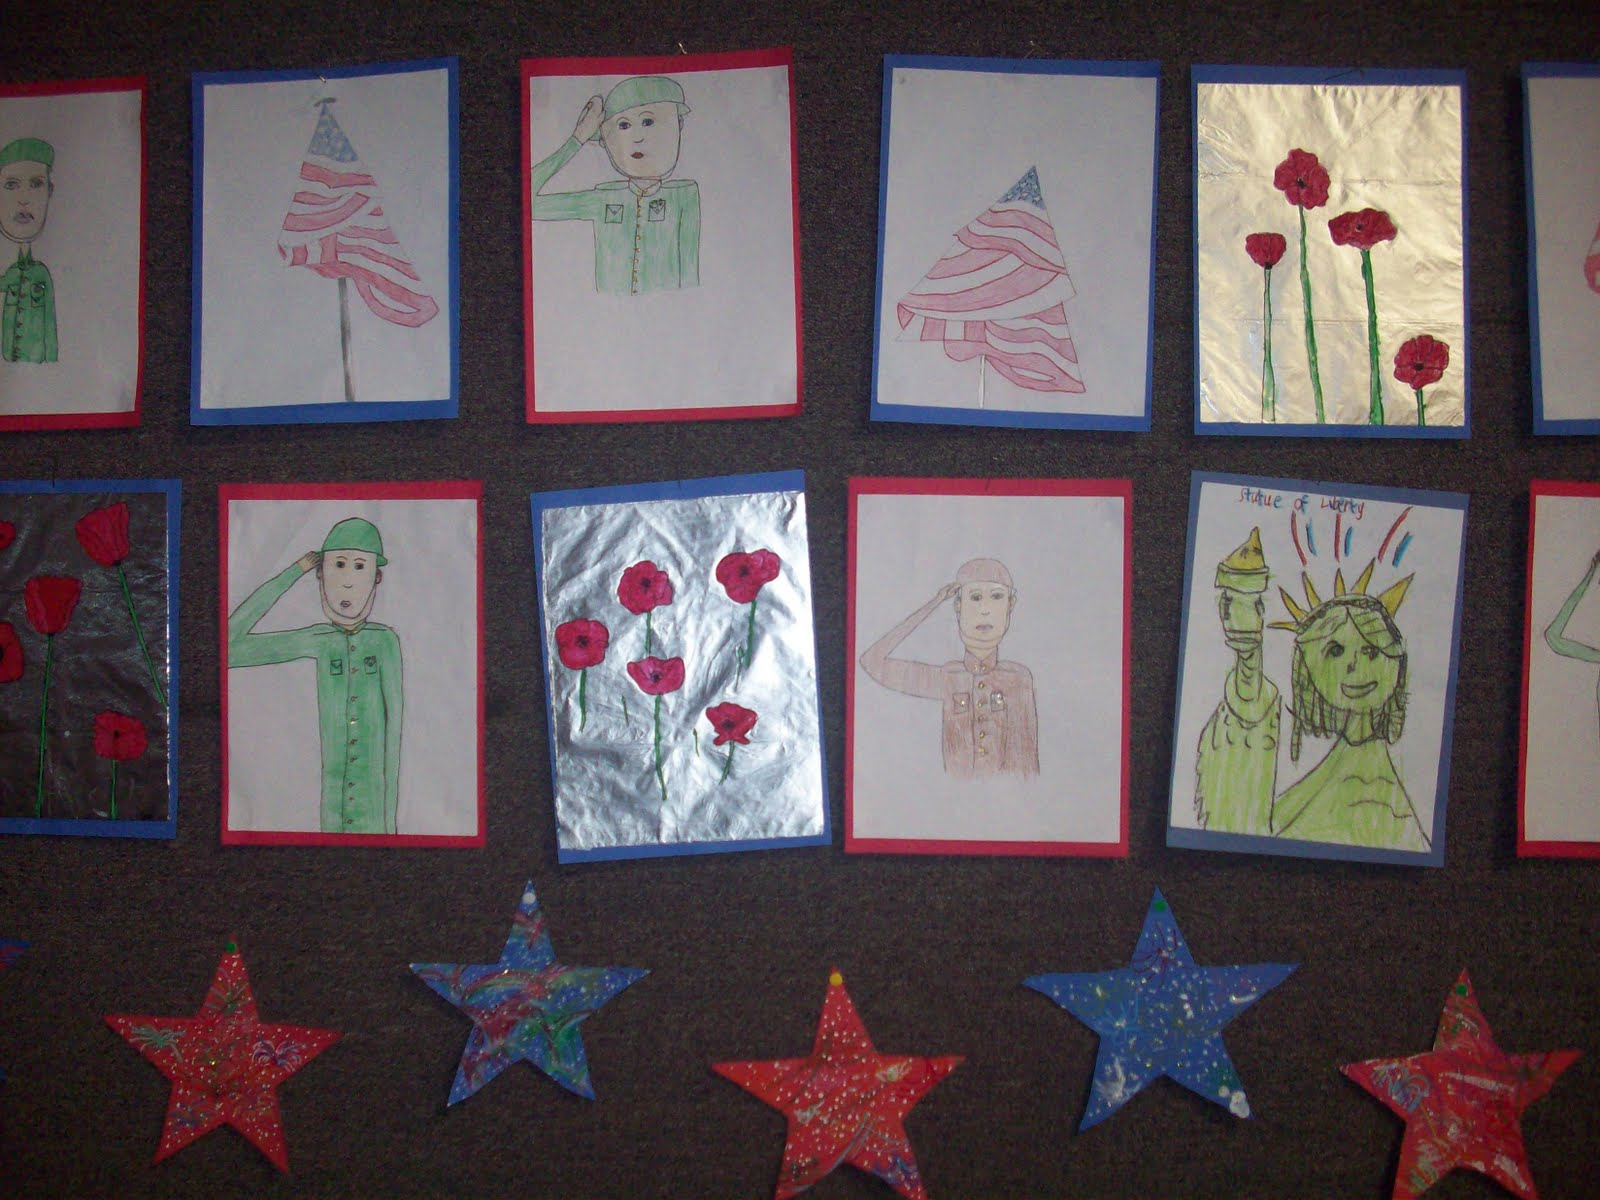 mrs porter s palette veterans day veterans day is very important at our school we have a big assembly every year to honor those who have served for our country all of the students write